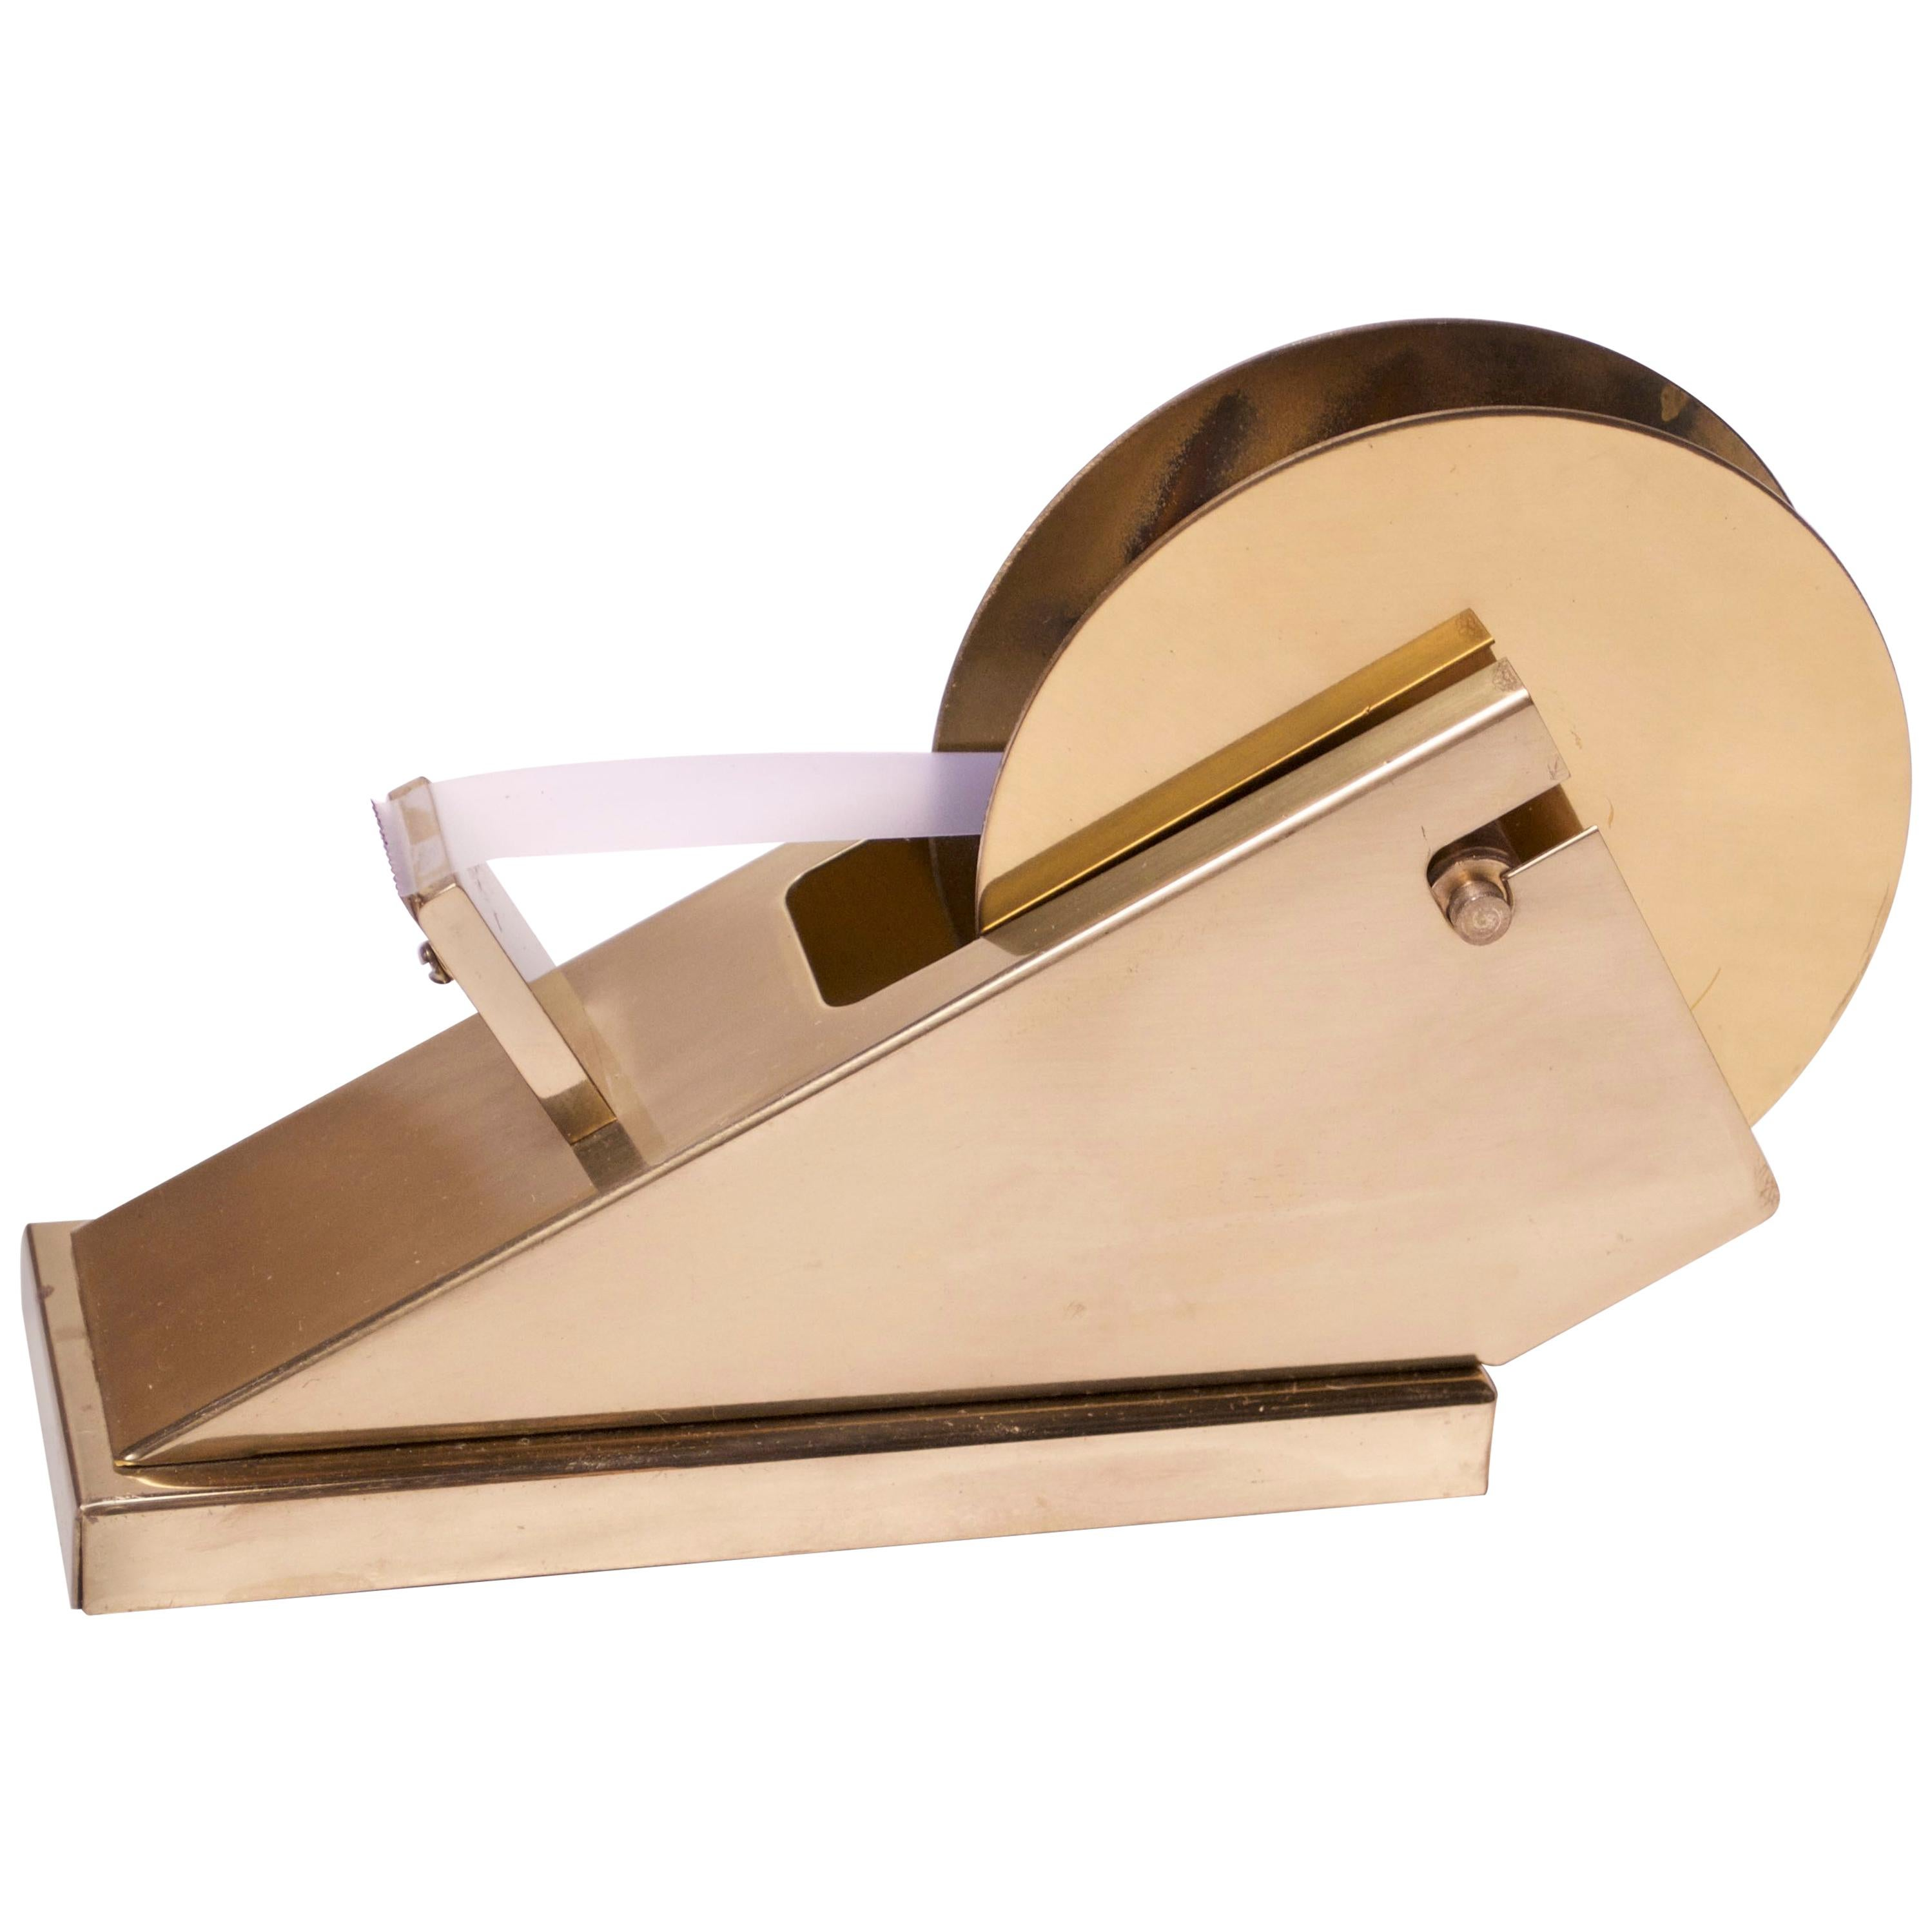 1970s Modernist Polished Brass Tape Dispenser